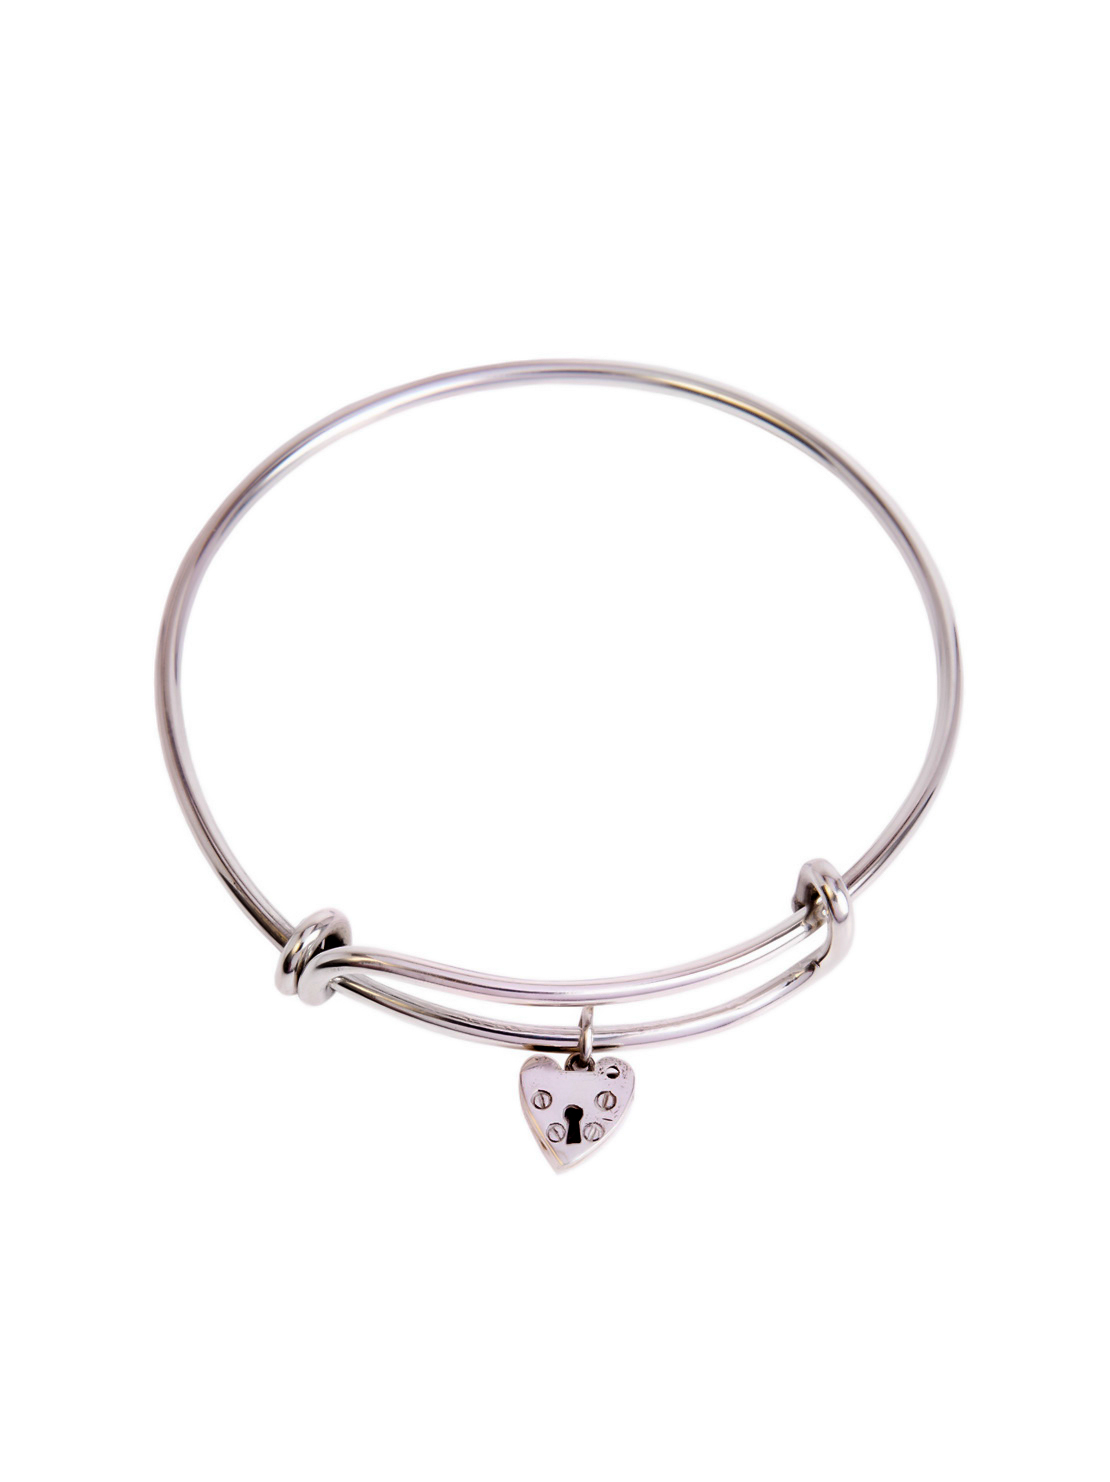 shop charm tilly category silver bangles bangle sveaas jewellery sterling